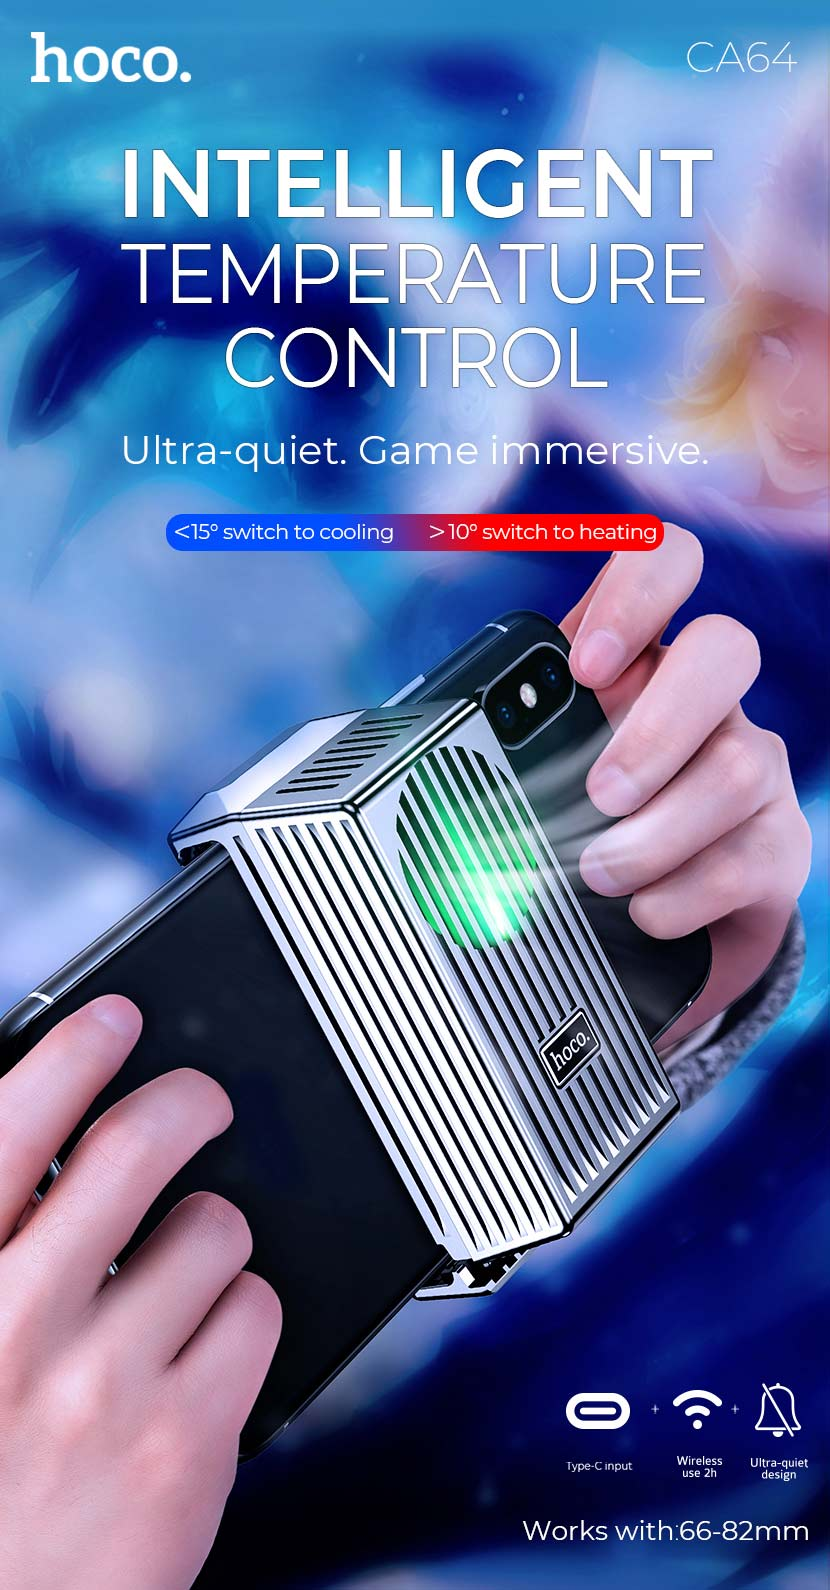 hoco news ca64 caesar temperature control gaming phone holder smart en